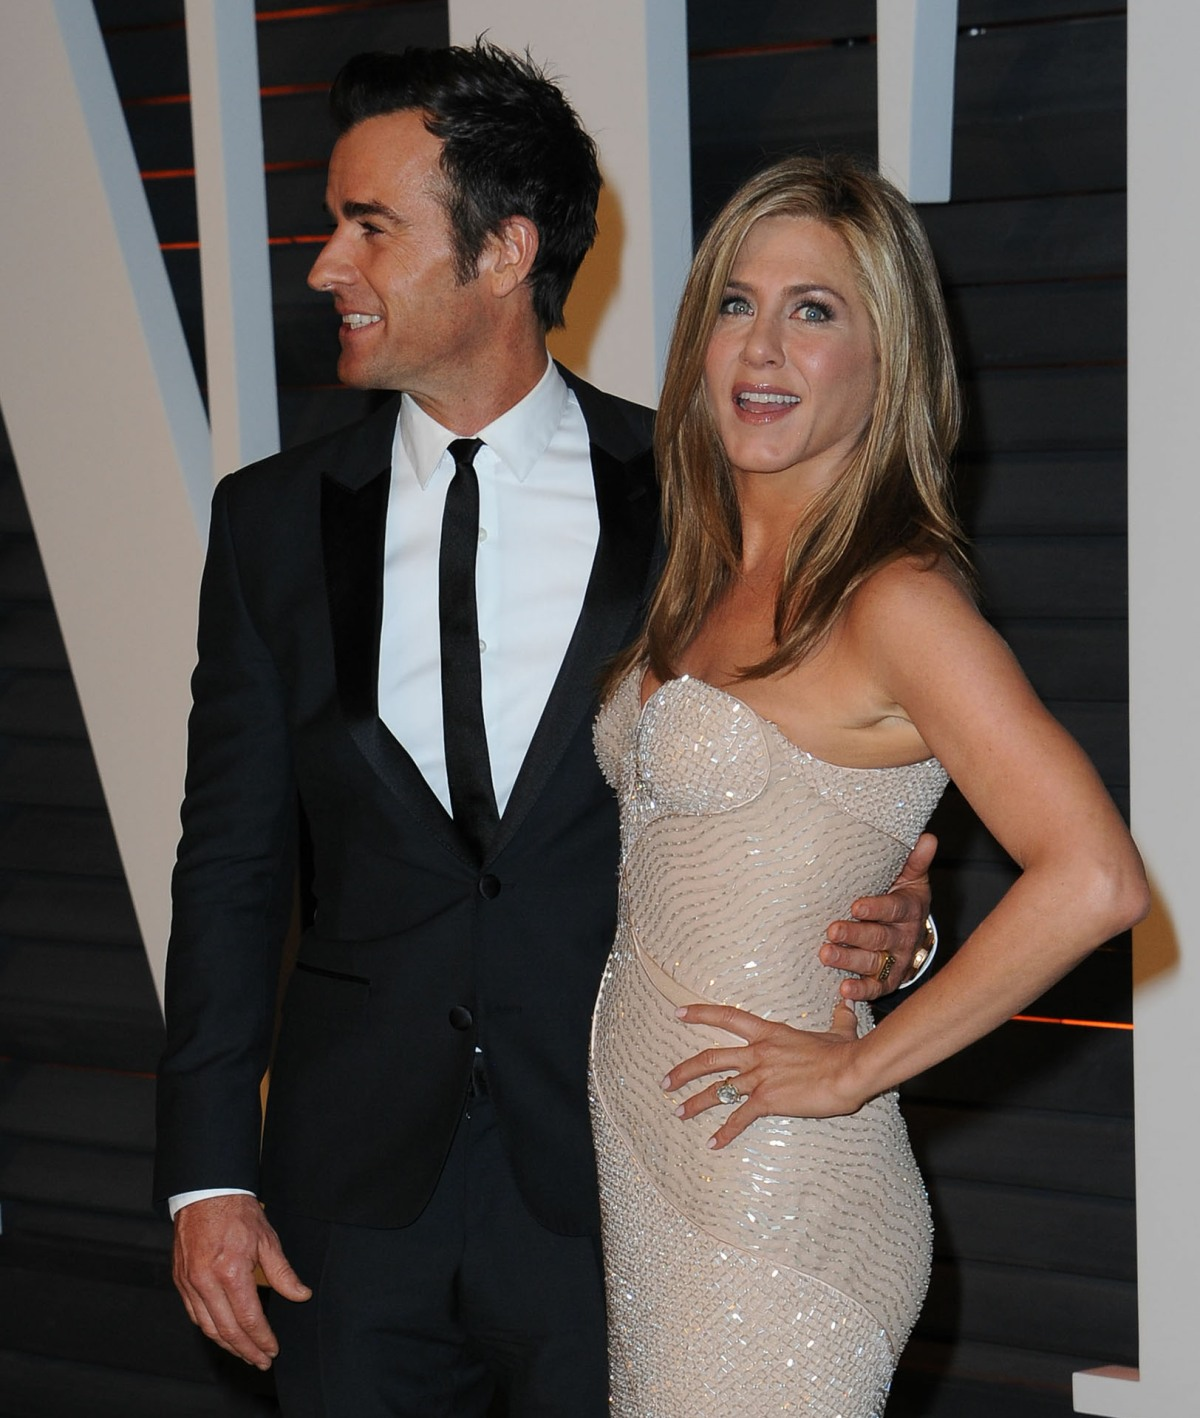 People: No one understood why Justin Theroux & Jen Aniston got married at all